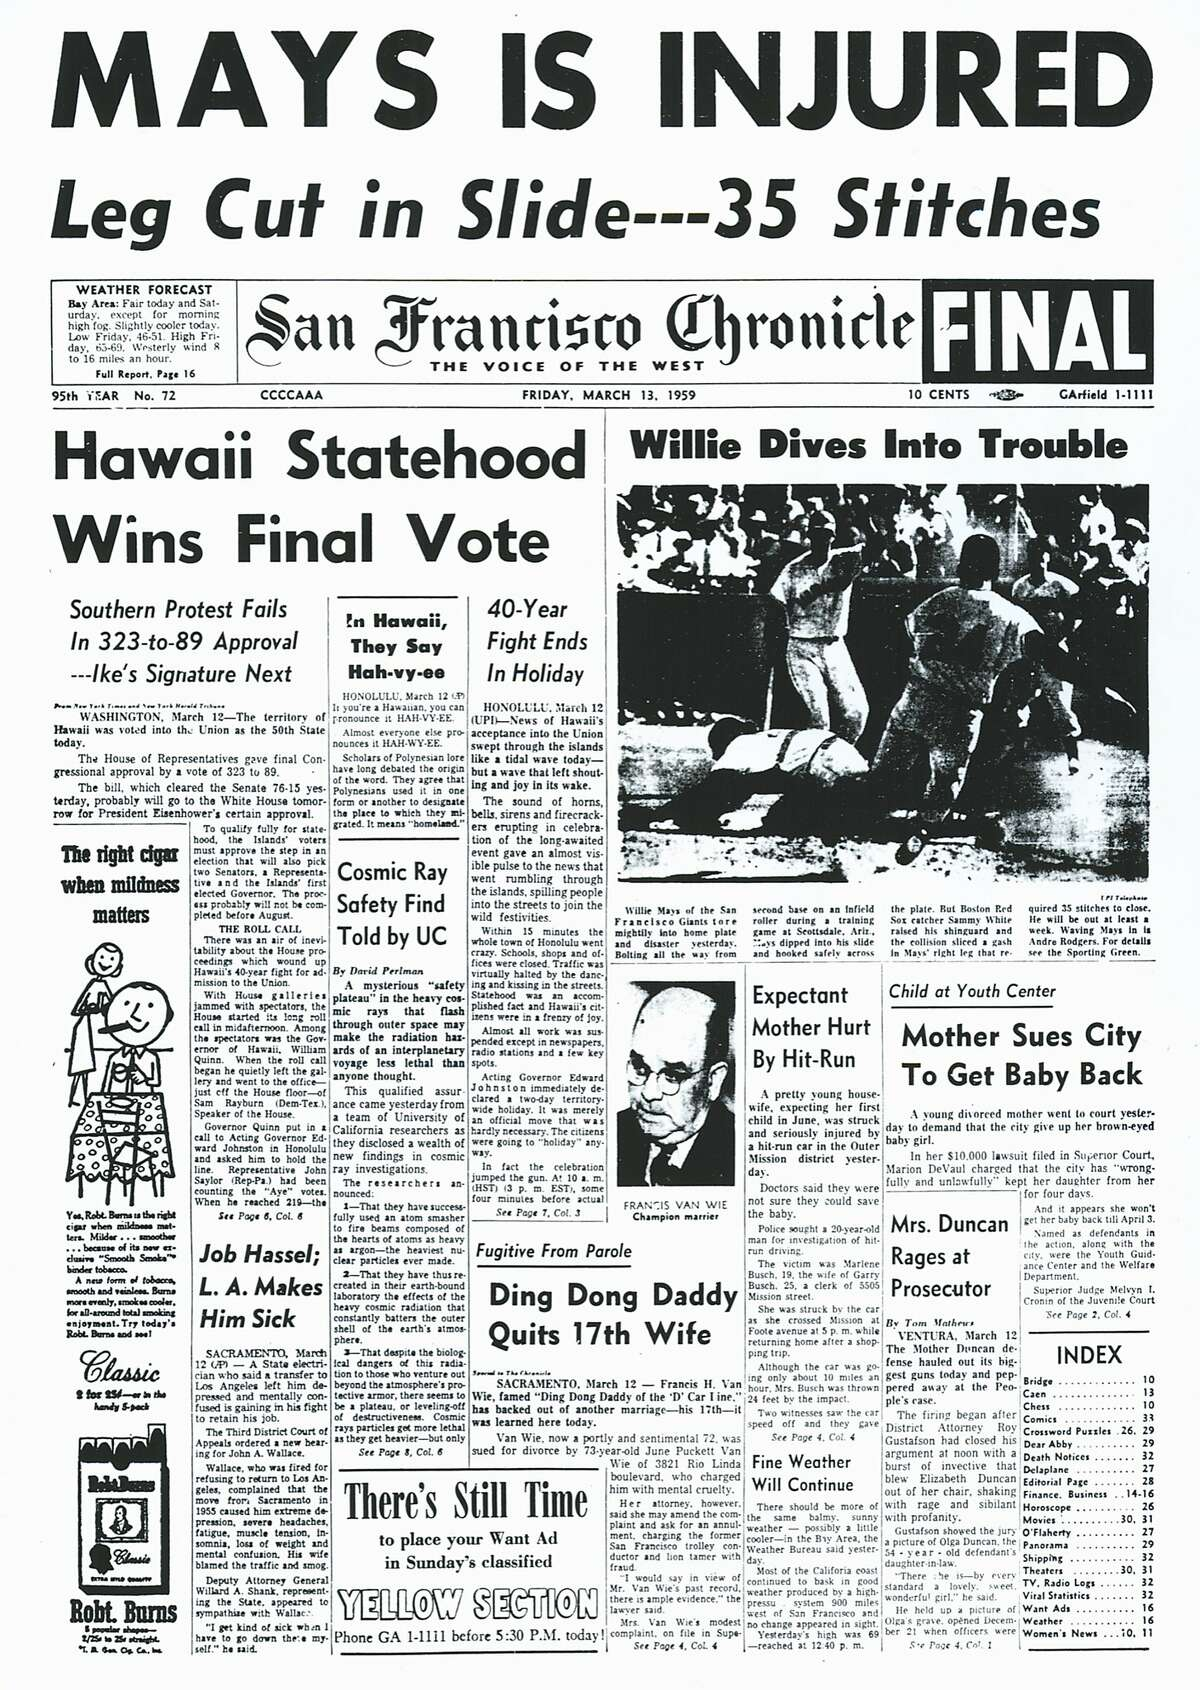 The Chronicle's front page from March 13, 1959, covers Hawaii gaining statehood and Willie Mays getting injured.